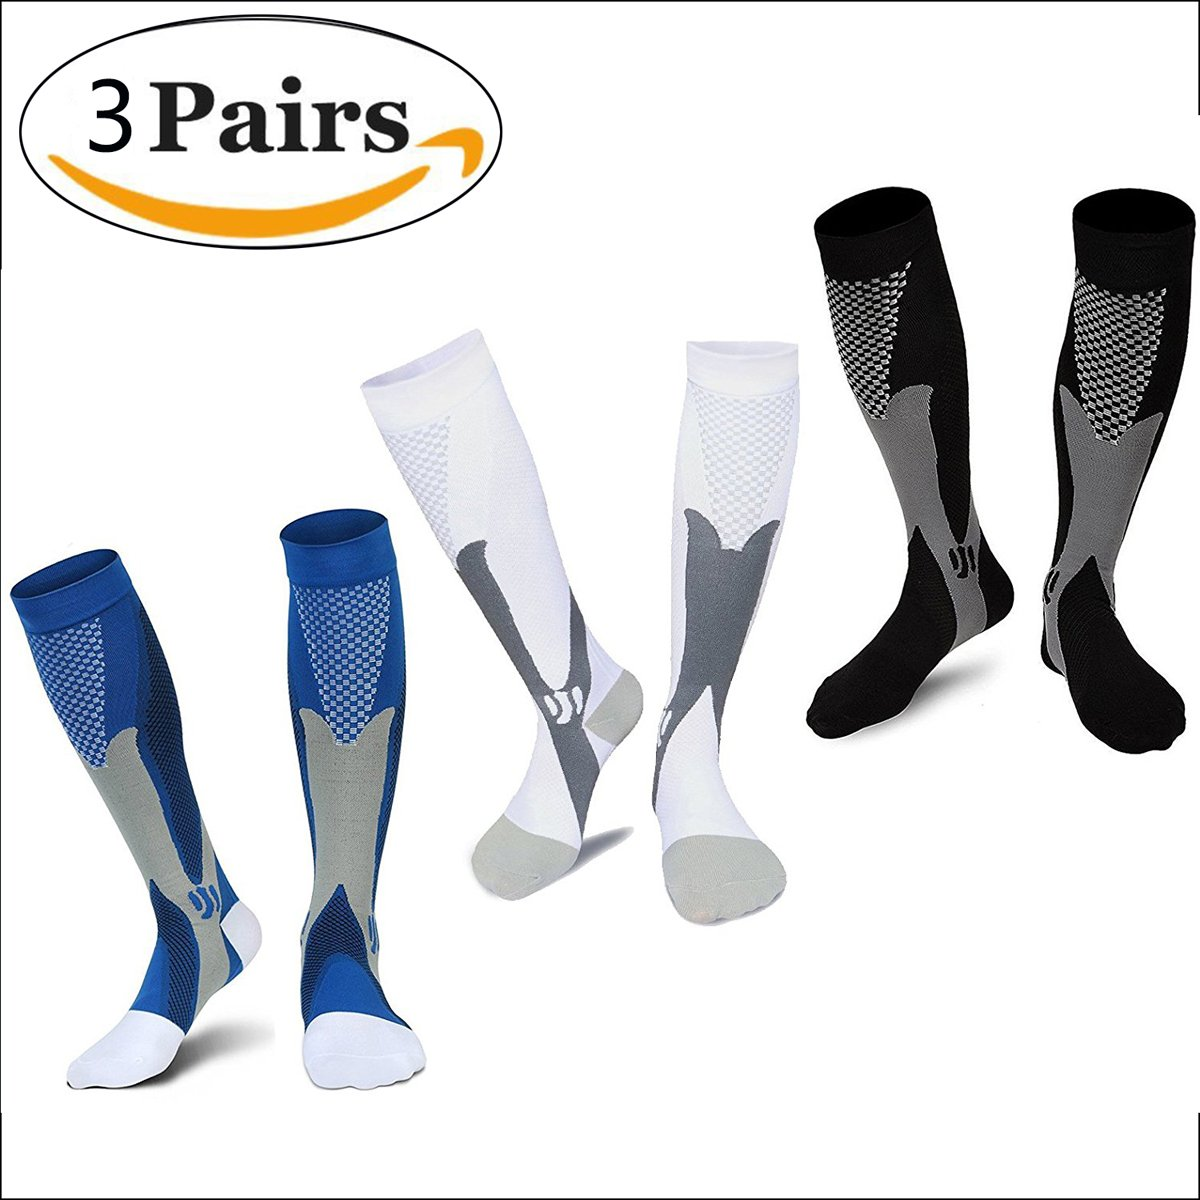 Sintiz Compression Socks for Men & Women (1/2/3 Pairs),Knee High Stockings Graduated Support Athletic Running Pregnancy Health Travel Running Flight Nurses & Recovery Black + White + Blue L/XL